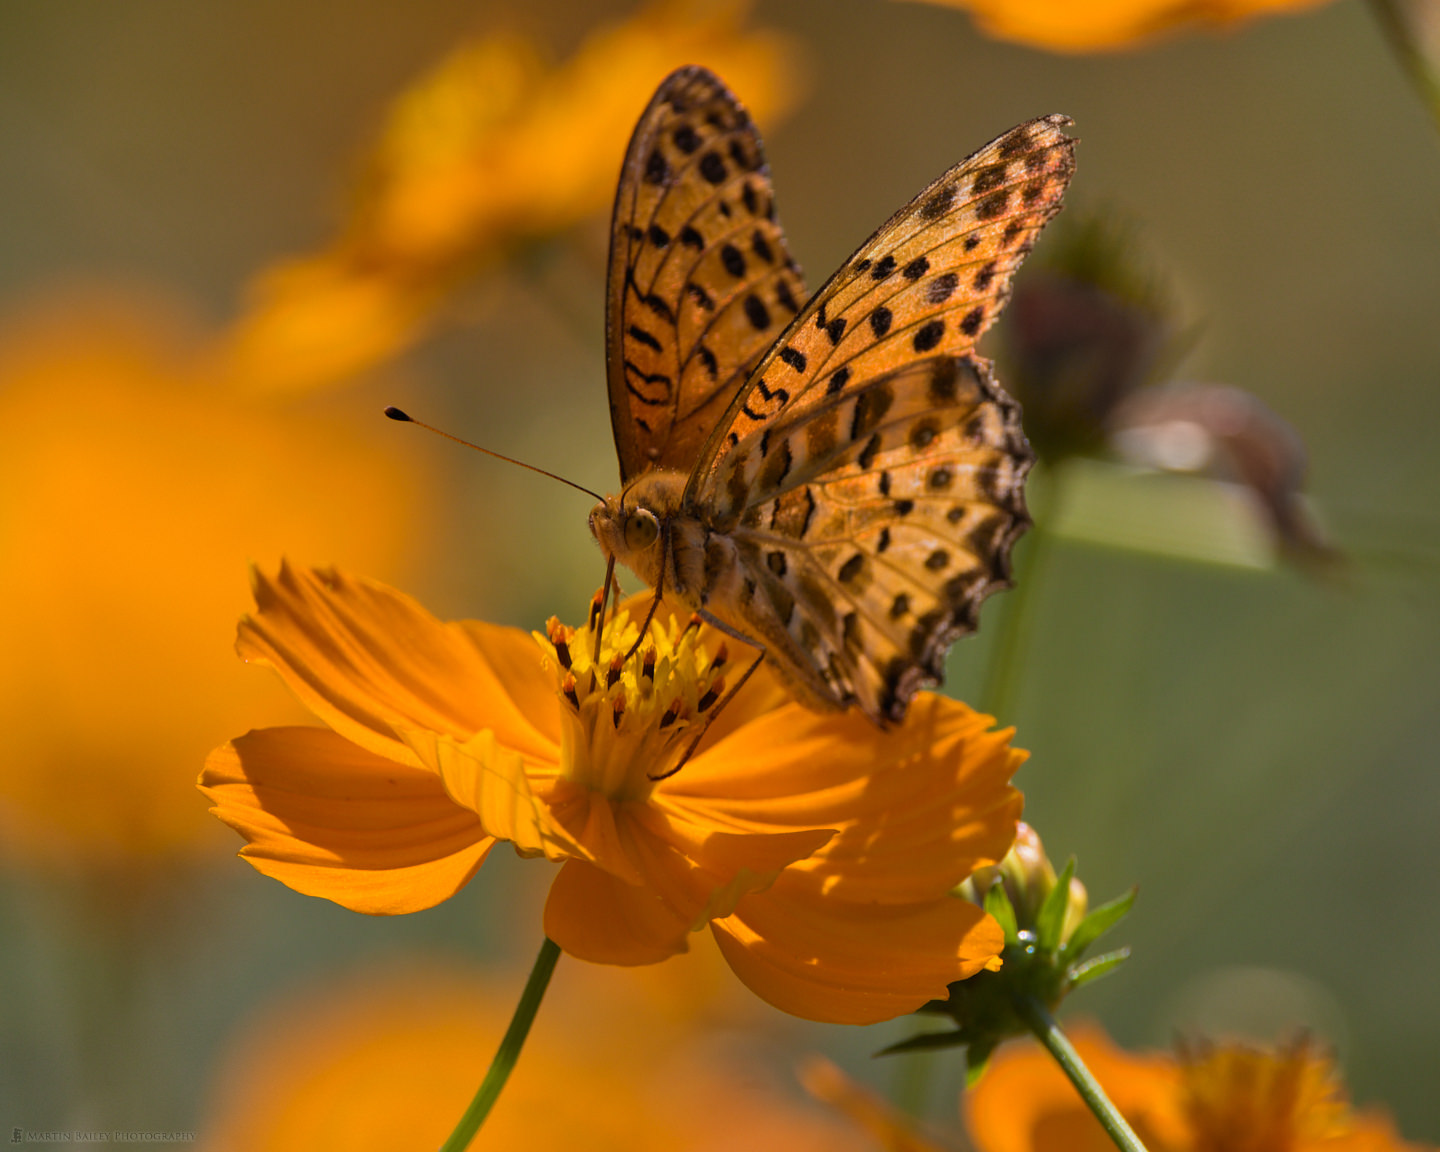 Lesser Marbled Fritillary on Golden Cosmos